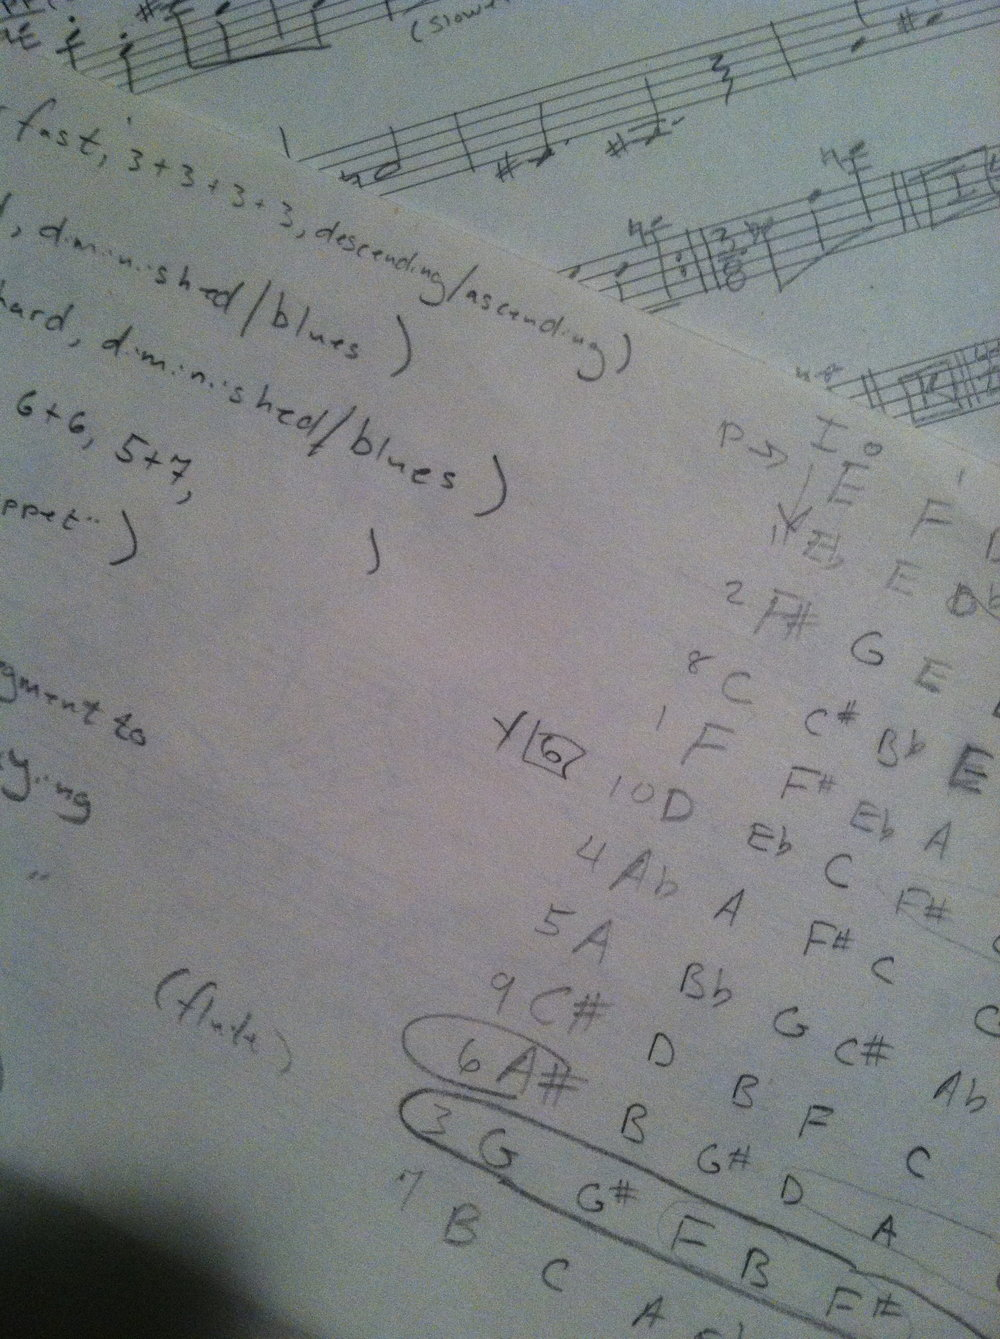 Sketches for a composition of John's fusing the twelve-tone system with jazz riffs.